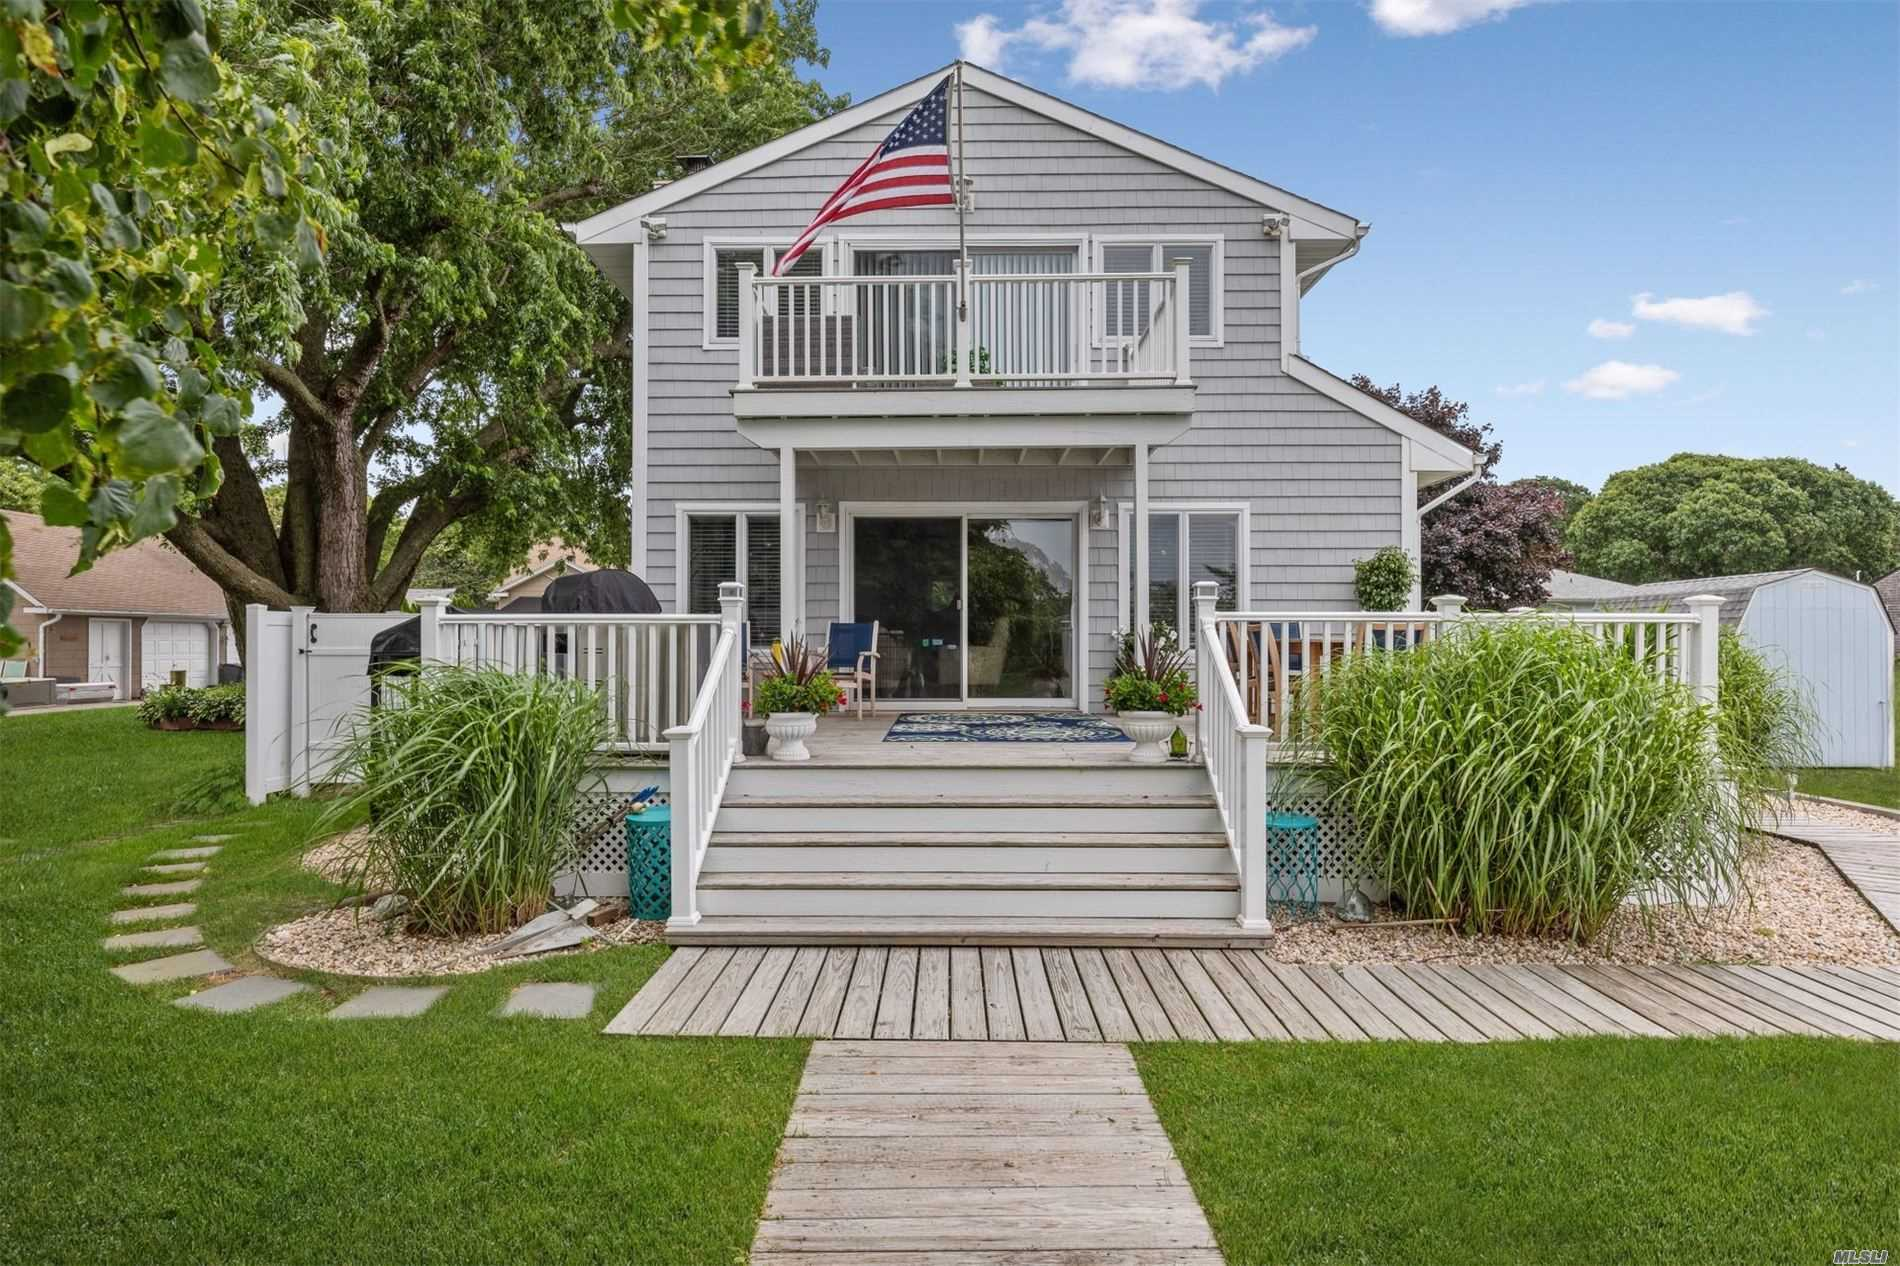 Photo of home for sale at 81 Beach Rd, Aquebogue NY